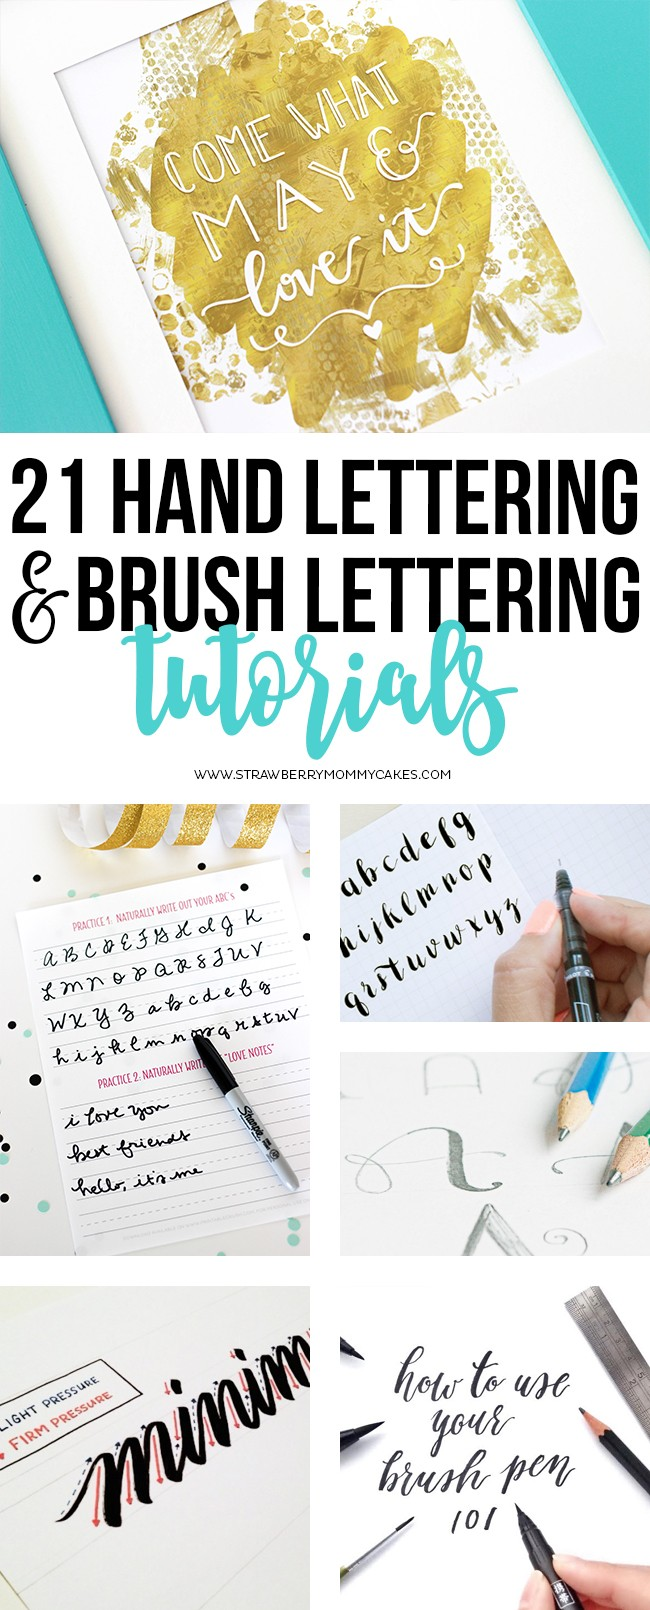 21 hand lettering and brush lettering tutorials printable crush ive rounded up 21 of the best hand lettering and brush lettering tutorials baditri Images